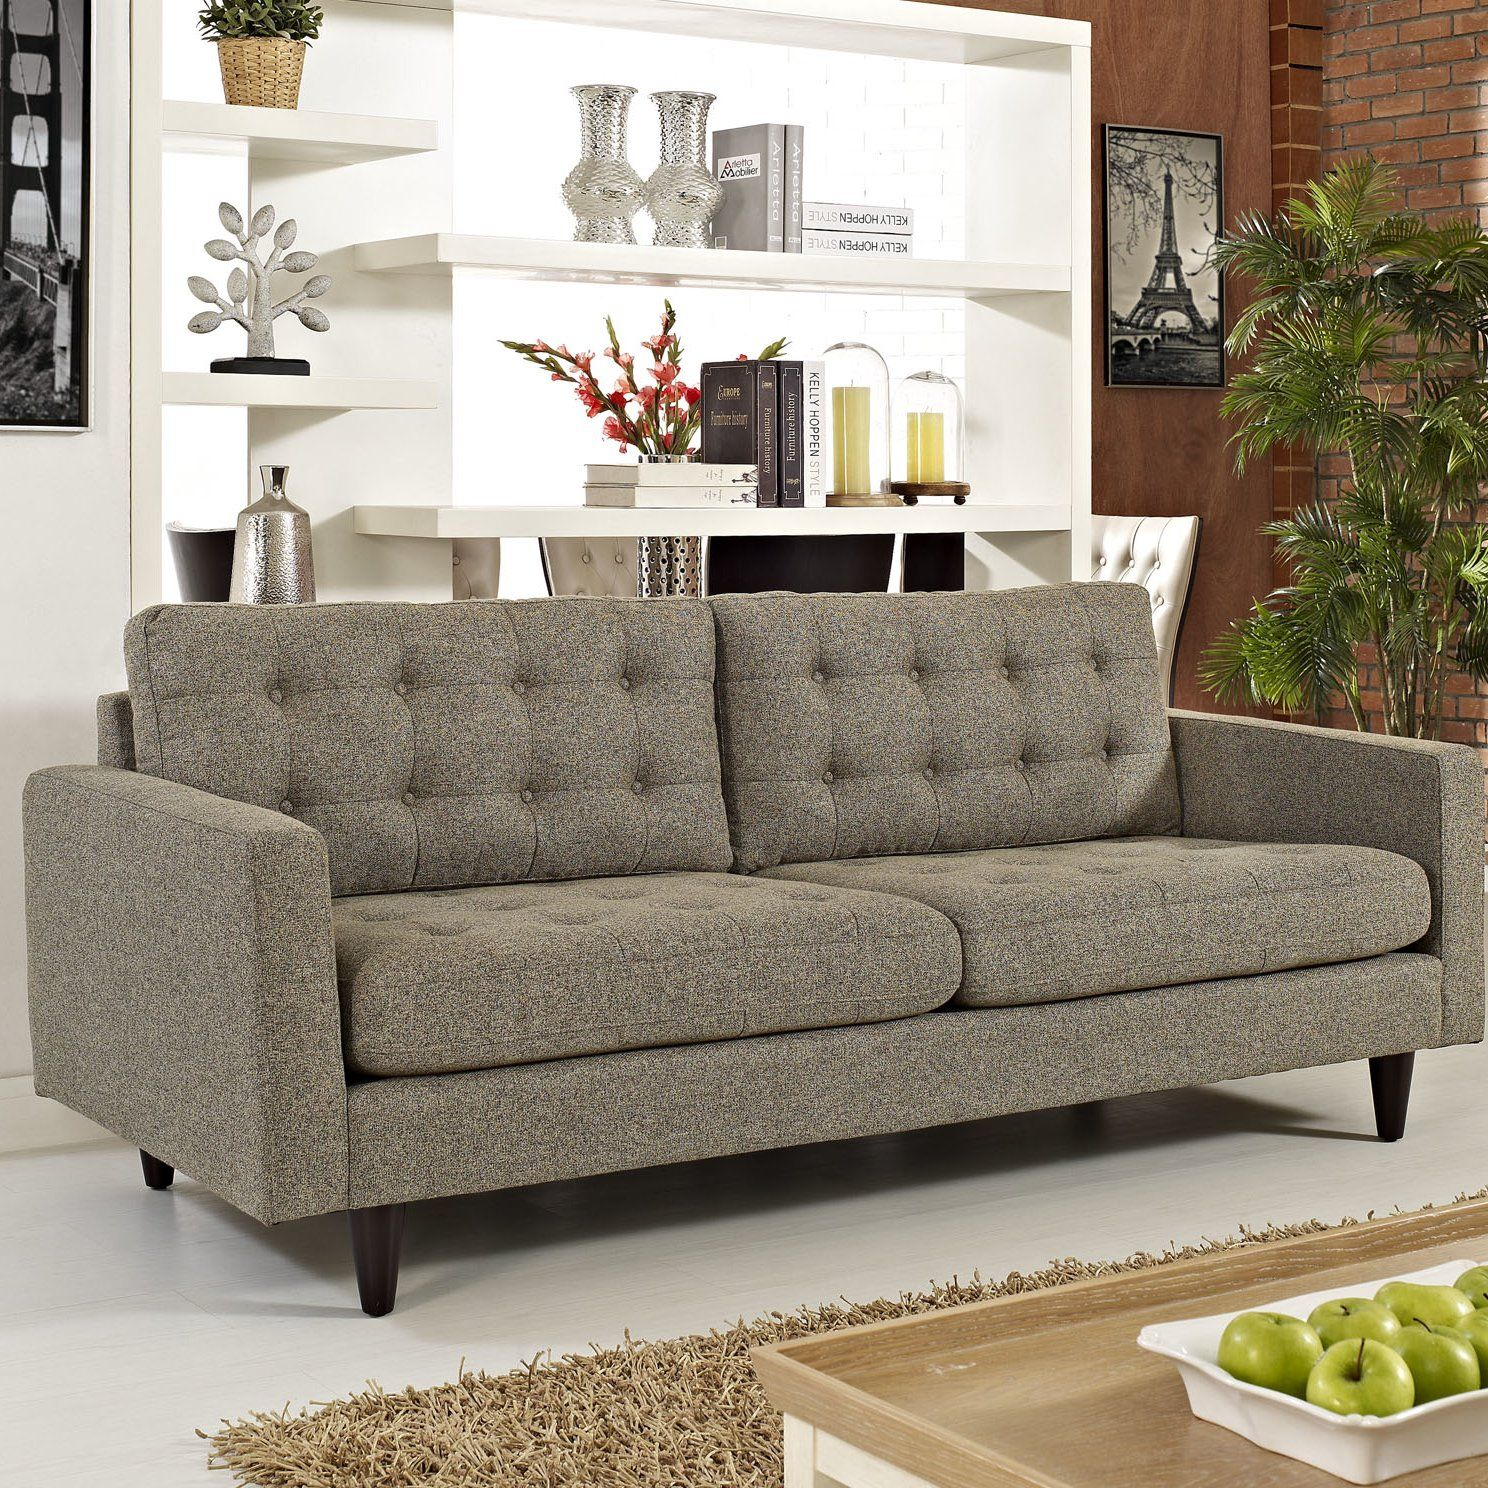 Langley street warren sofa reviews wayfair